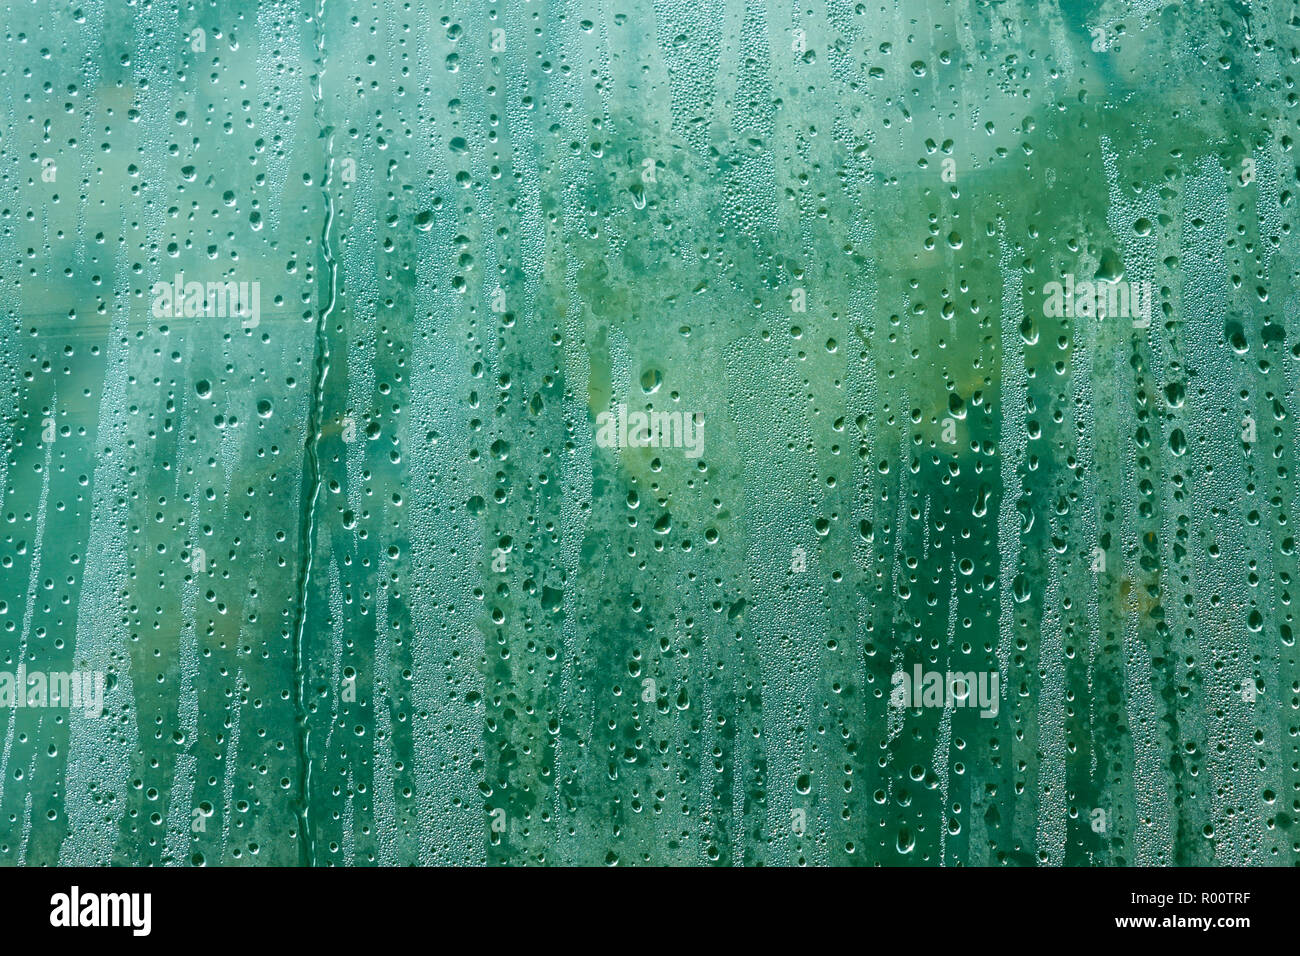 The surface of polyethylene film with a condensed drops of dew on the fuzzy background of green plants Stock Photo